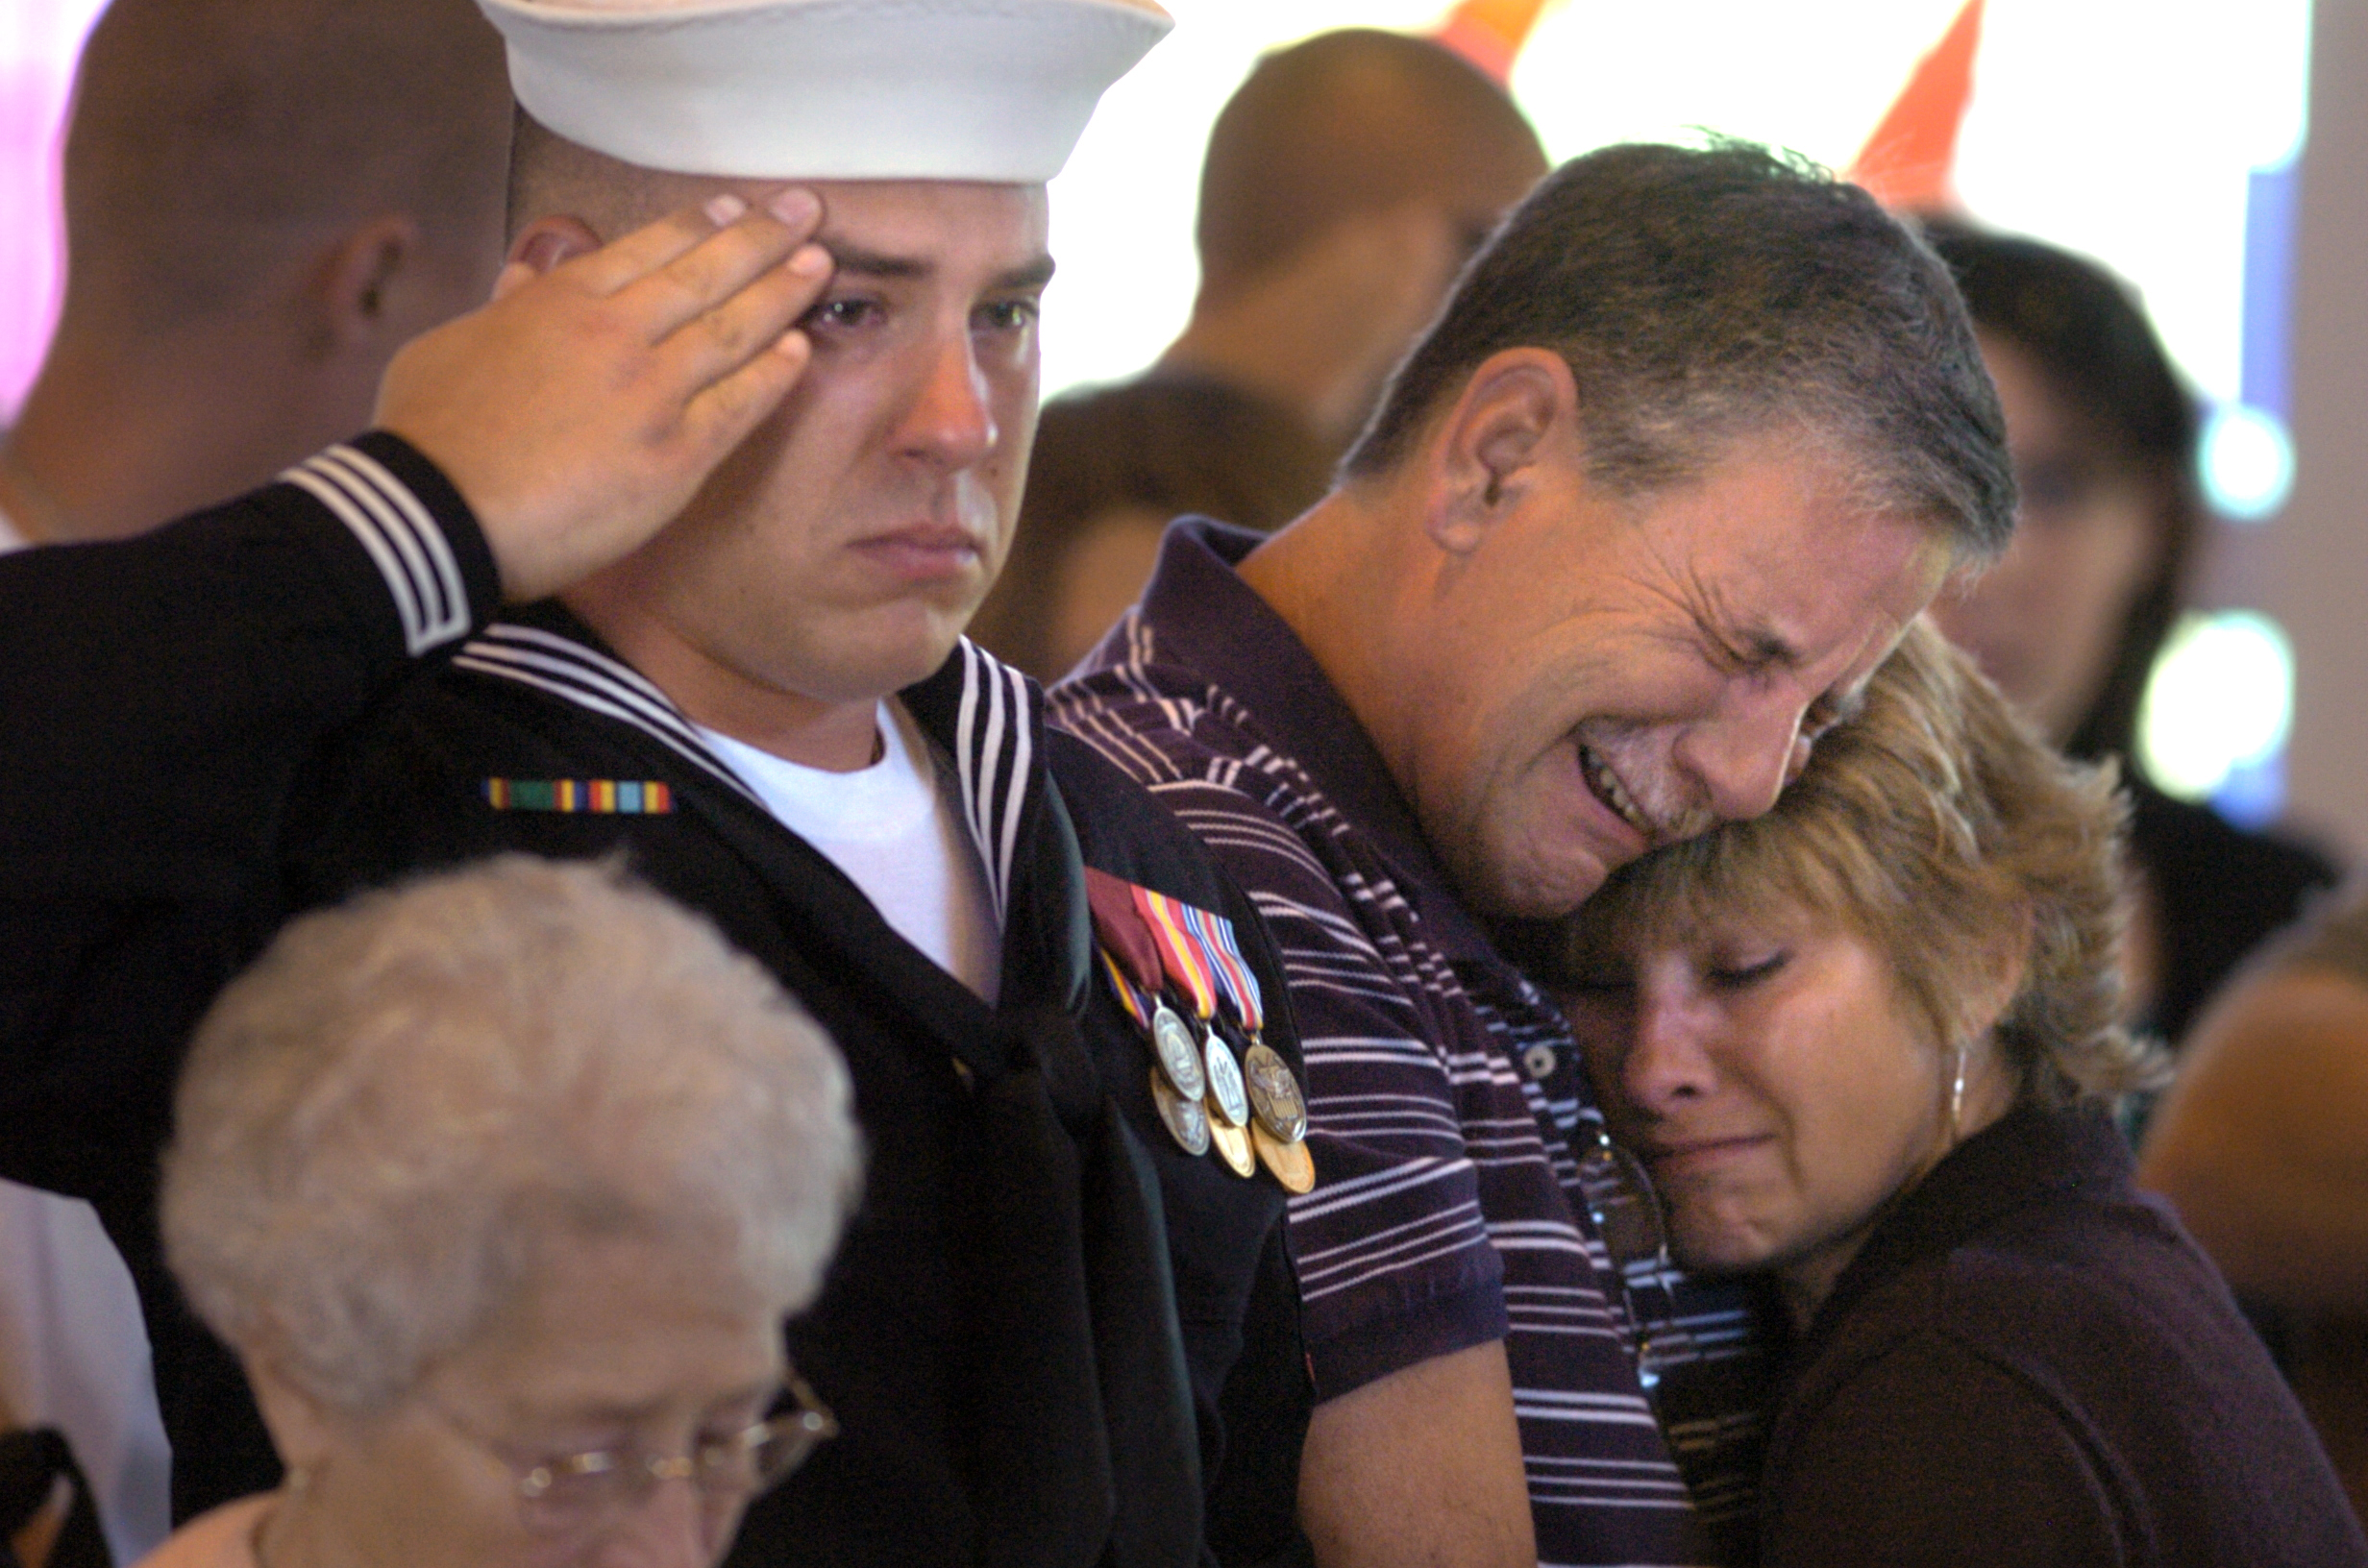 Justin Hall salutes, andparents Kevin and Becky Hall embrace during a memorial service for their brother and son Marine Corps Veteran Eric Hall at Faith Lutheran Church in Punta Gorda, Fla. The missing Marine's body was found in a remote area of Deep Creek after post traumatic stress disorder from the Iraq War caused him to flee arelative's home.